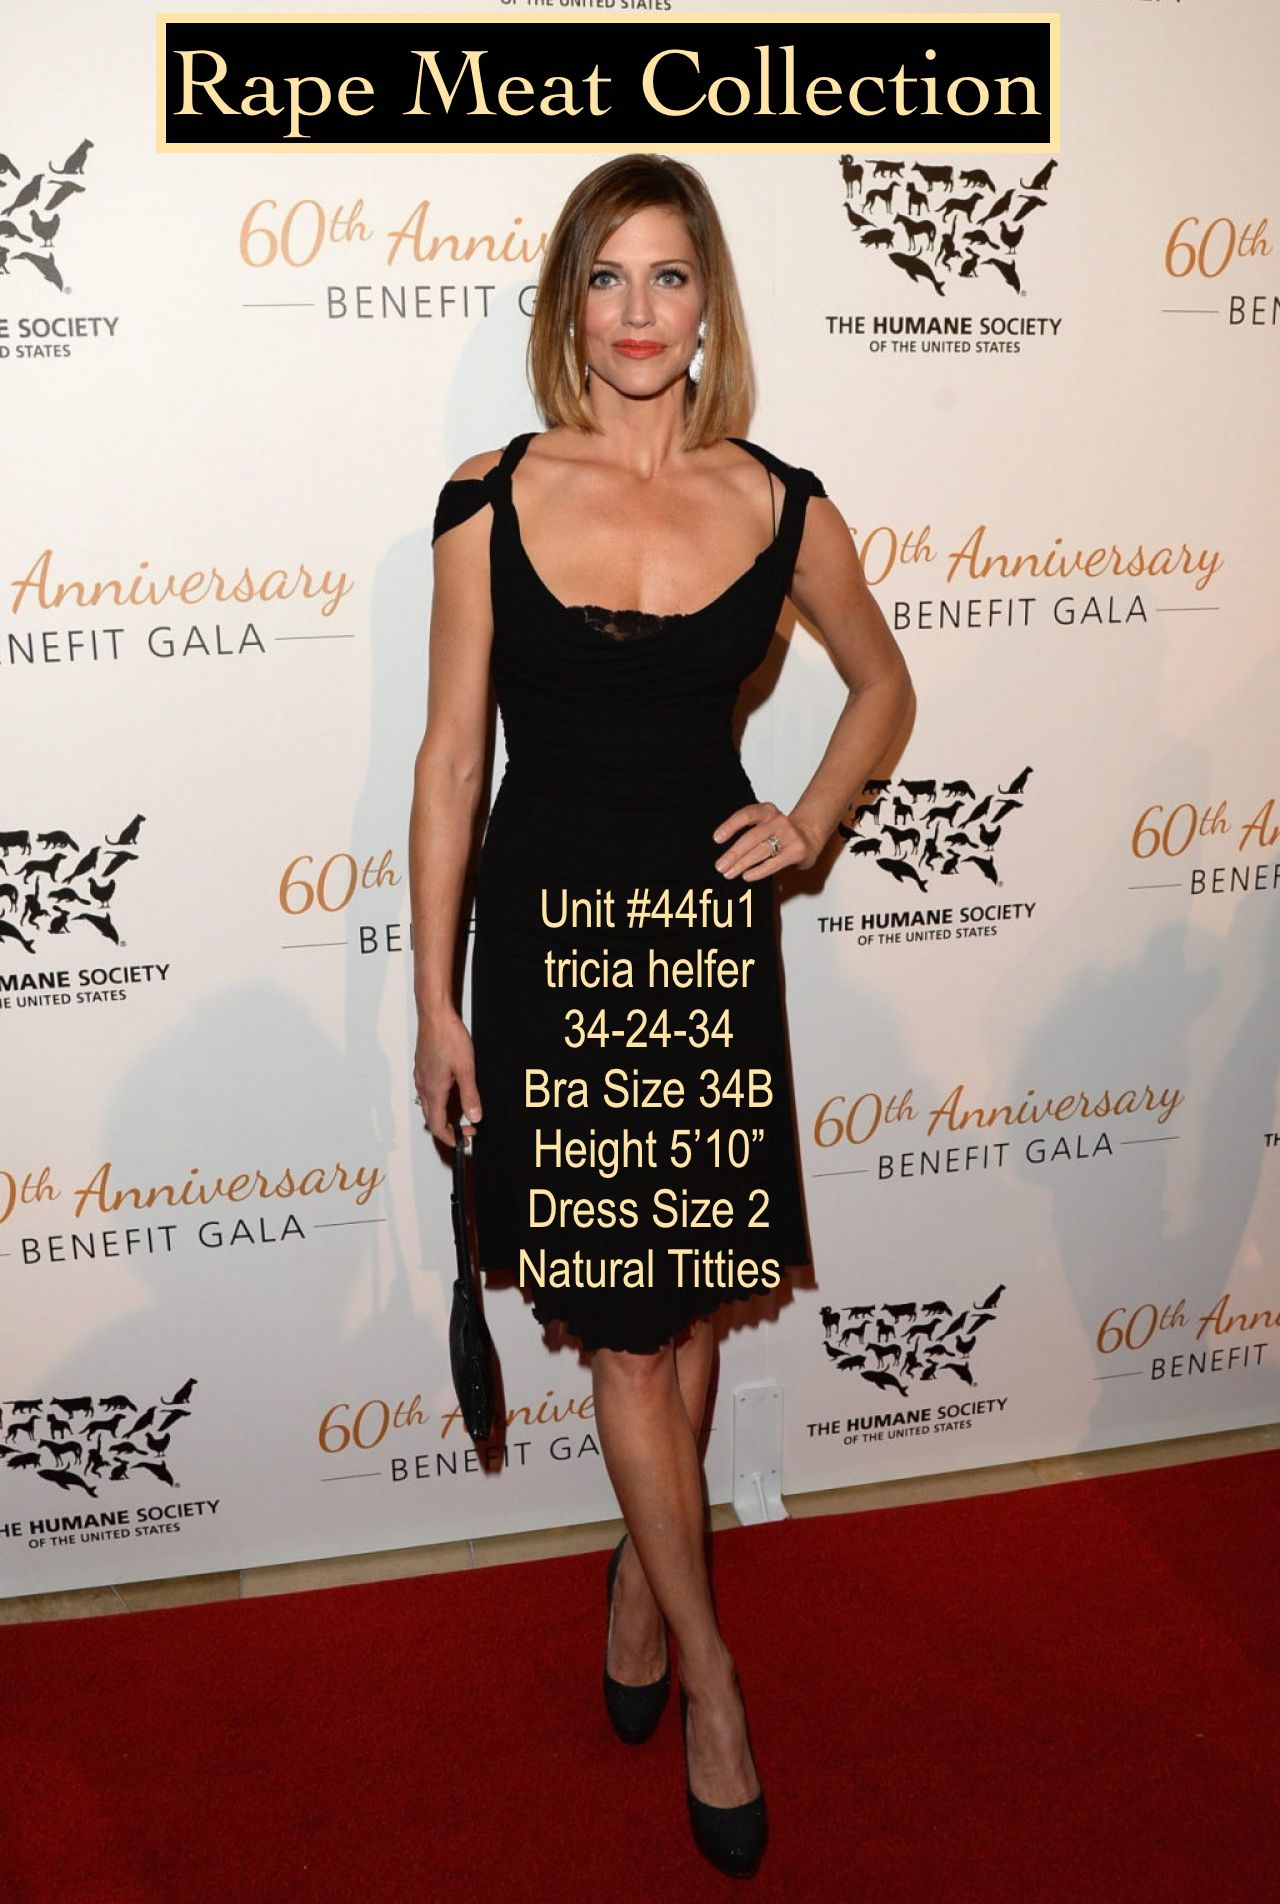 _tricia-helfer-on-red-carpet-humane-society-60th-anniversary-gala_4 2.jpg